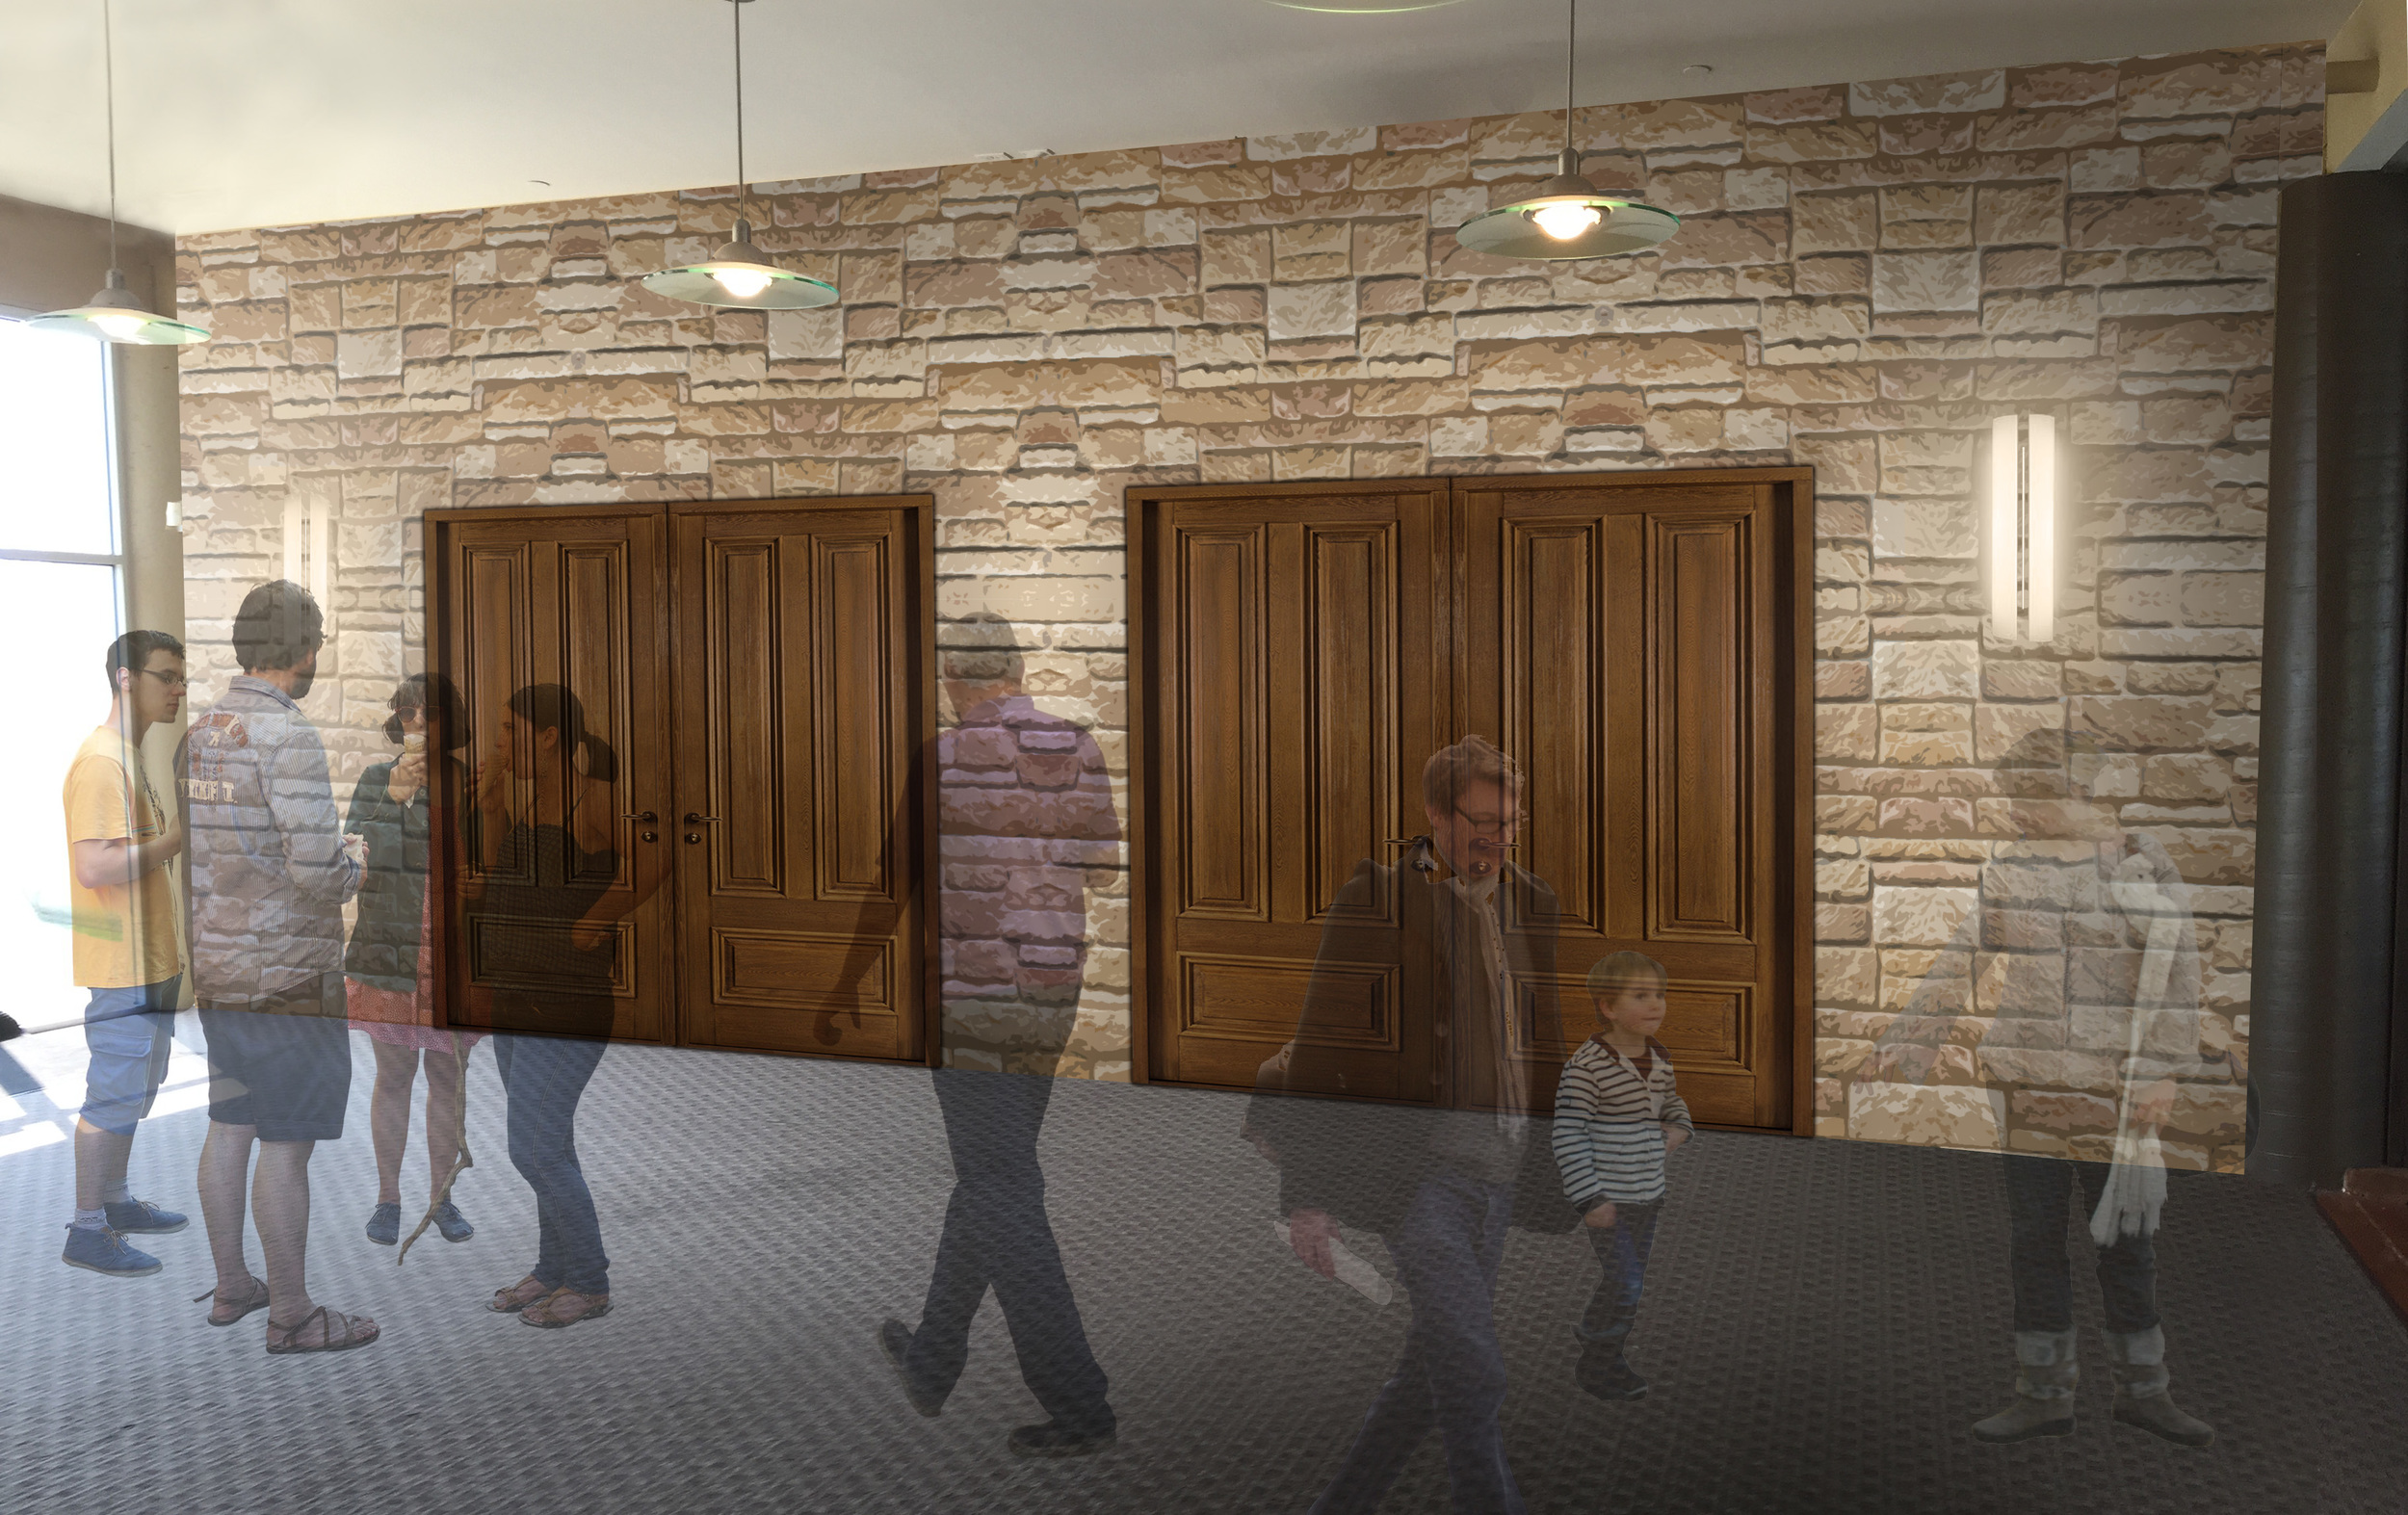 The Next Step - new vestibule entrance (click for larger image)